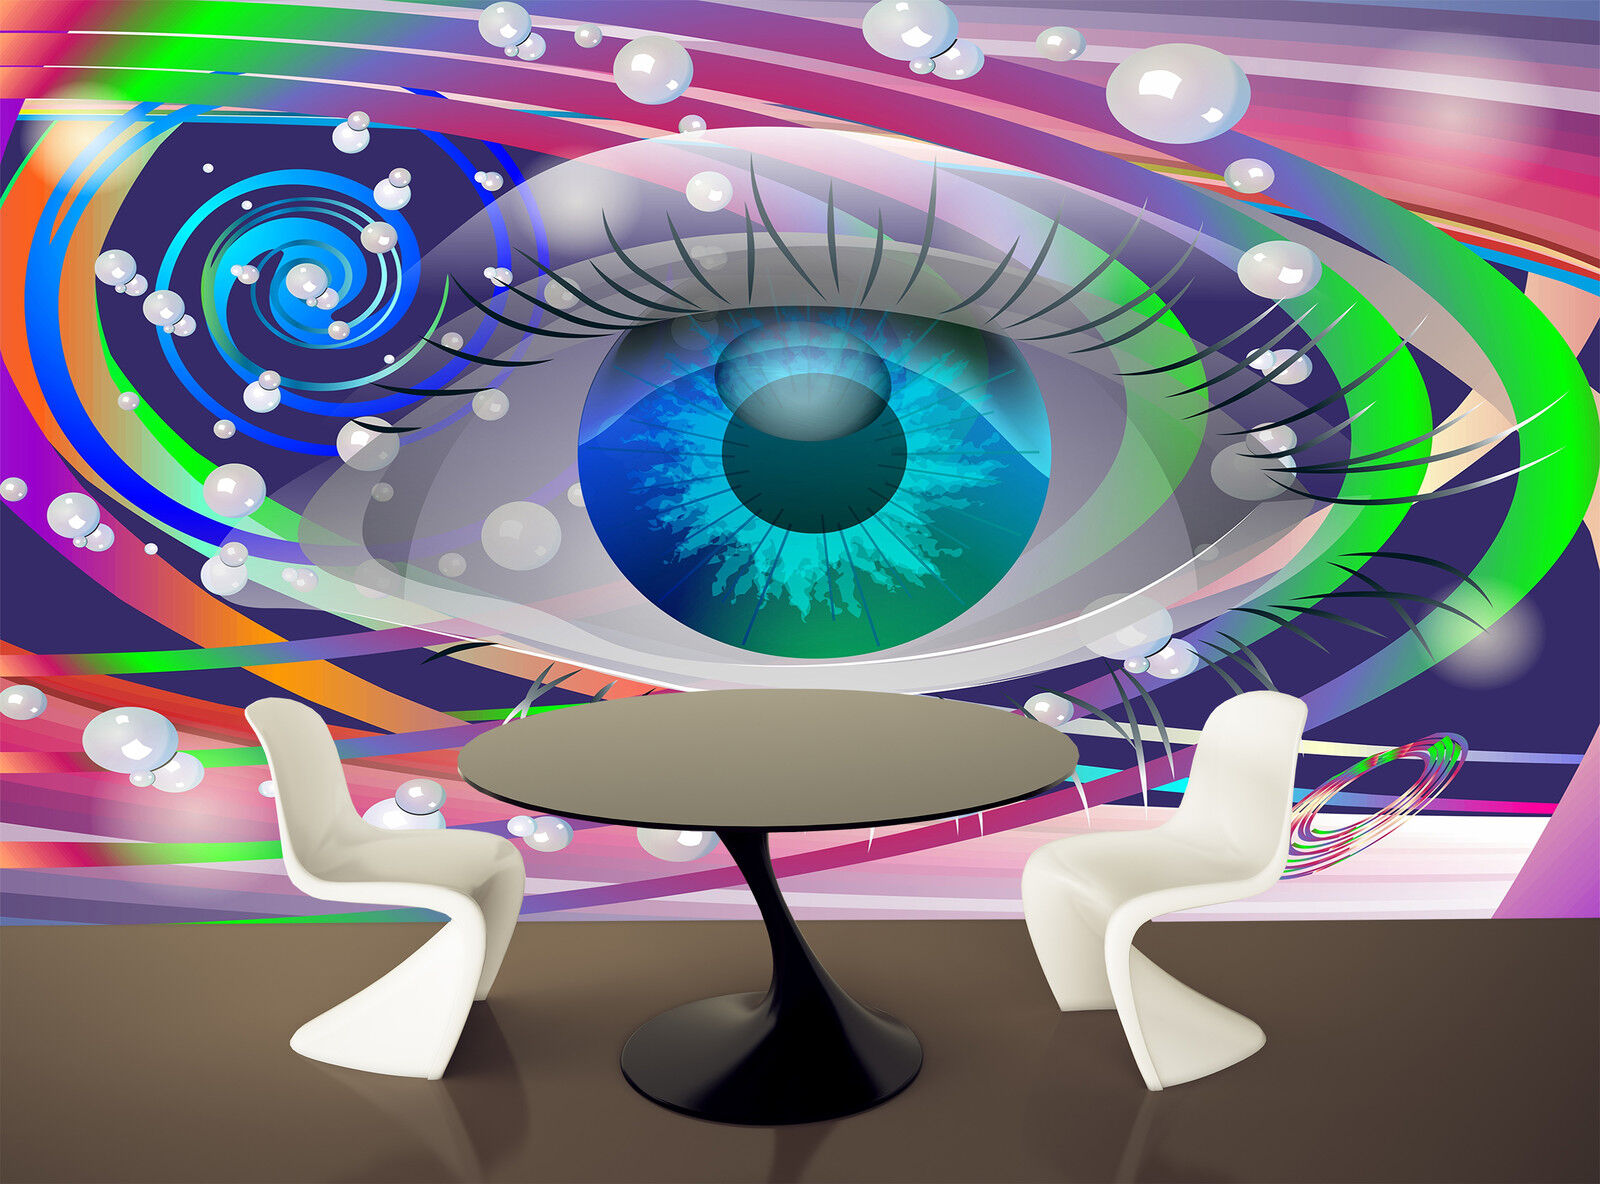 Space Eye Wall Mural Photo Wallpaper GIANT DECOR Paper Paper Paper Poster Free Paste 3d6adc